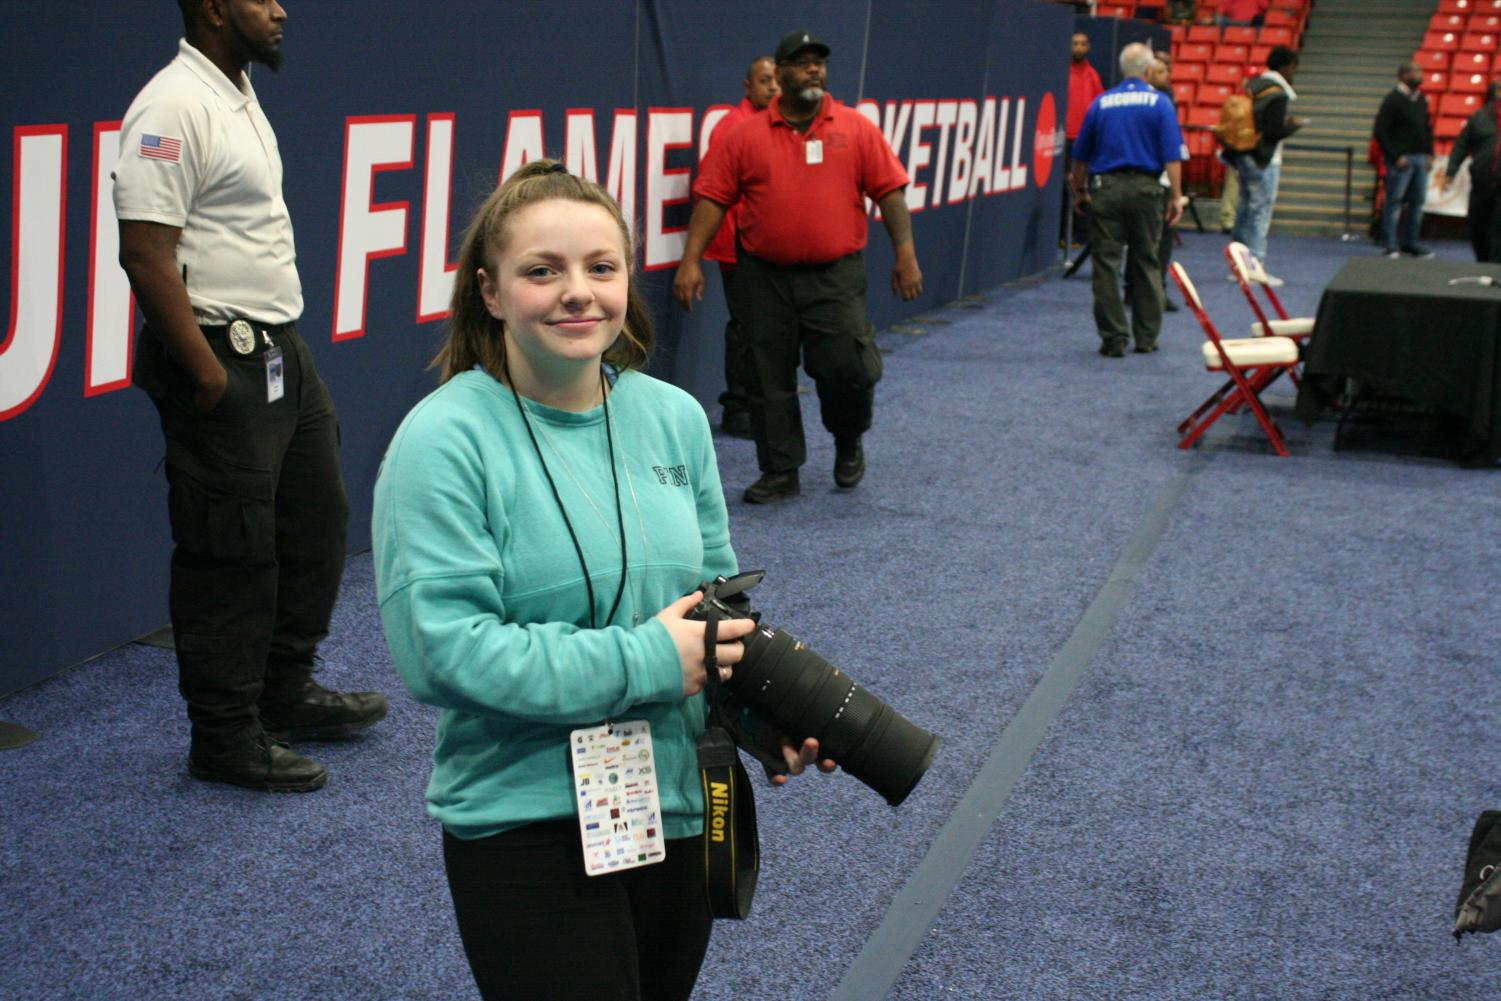 Photography Editor Hailey Paisker prepares to shoot photos at the Chicago Elite Basketball Tournament.